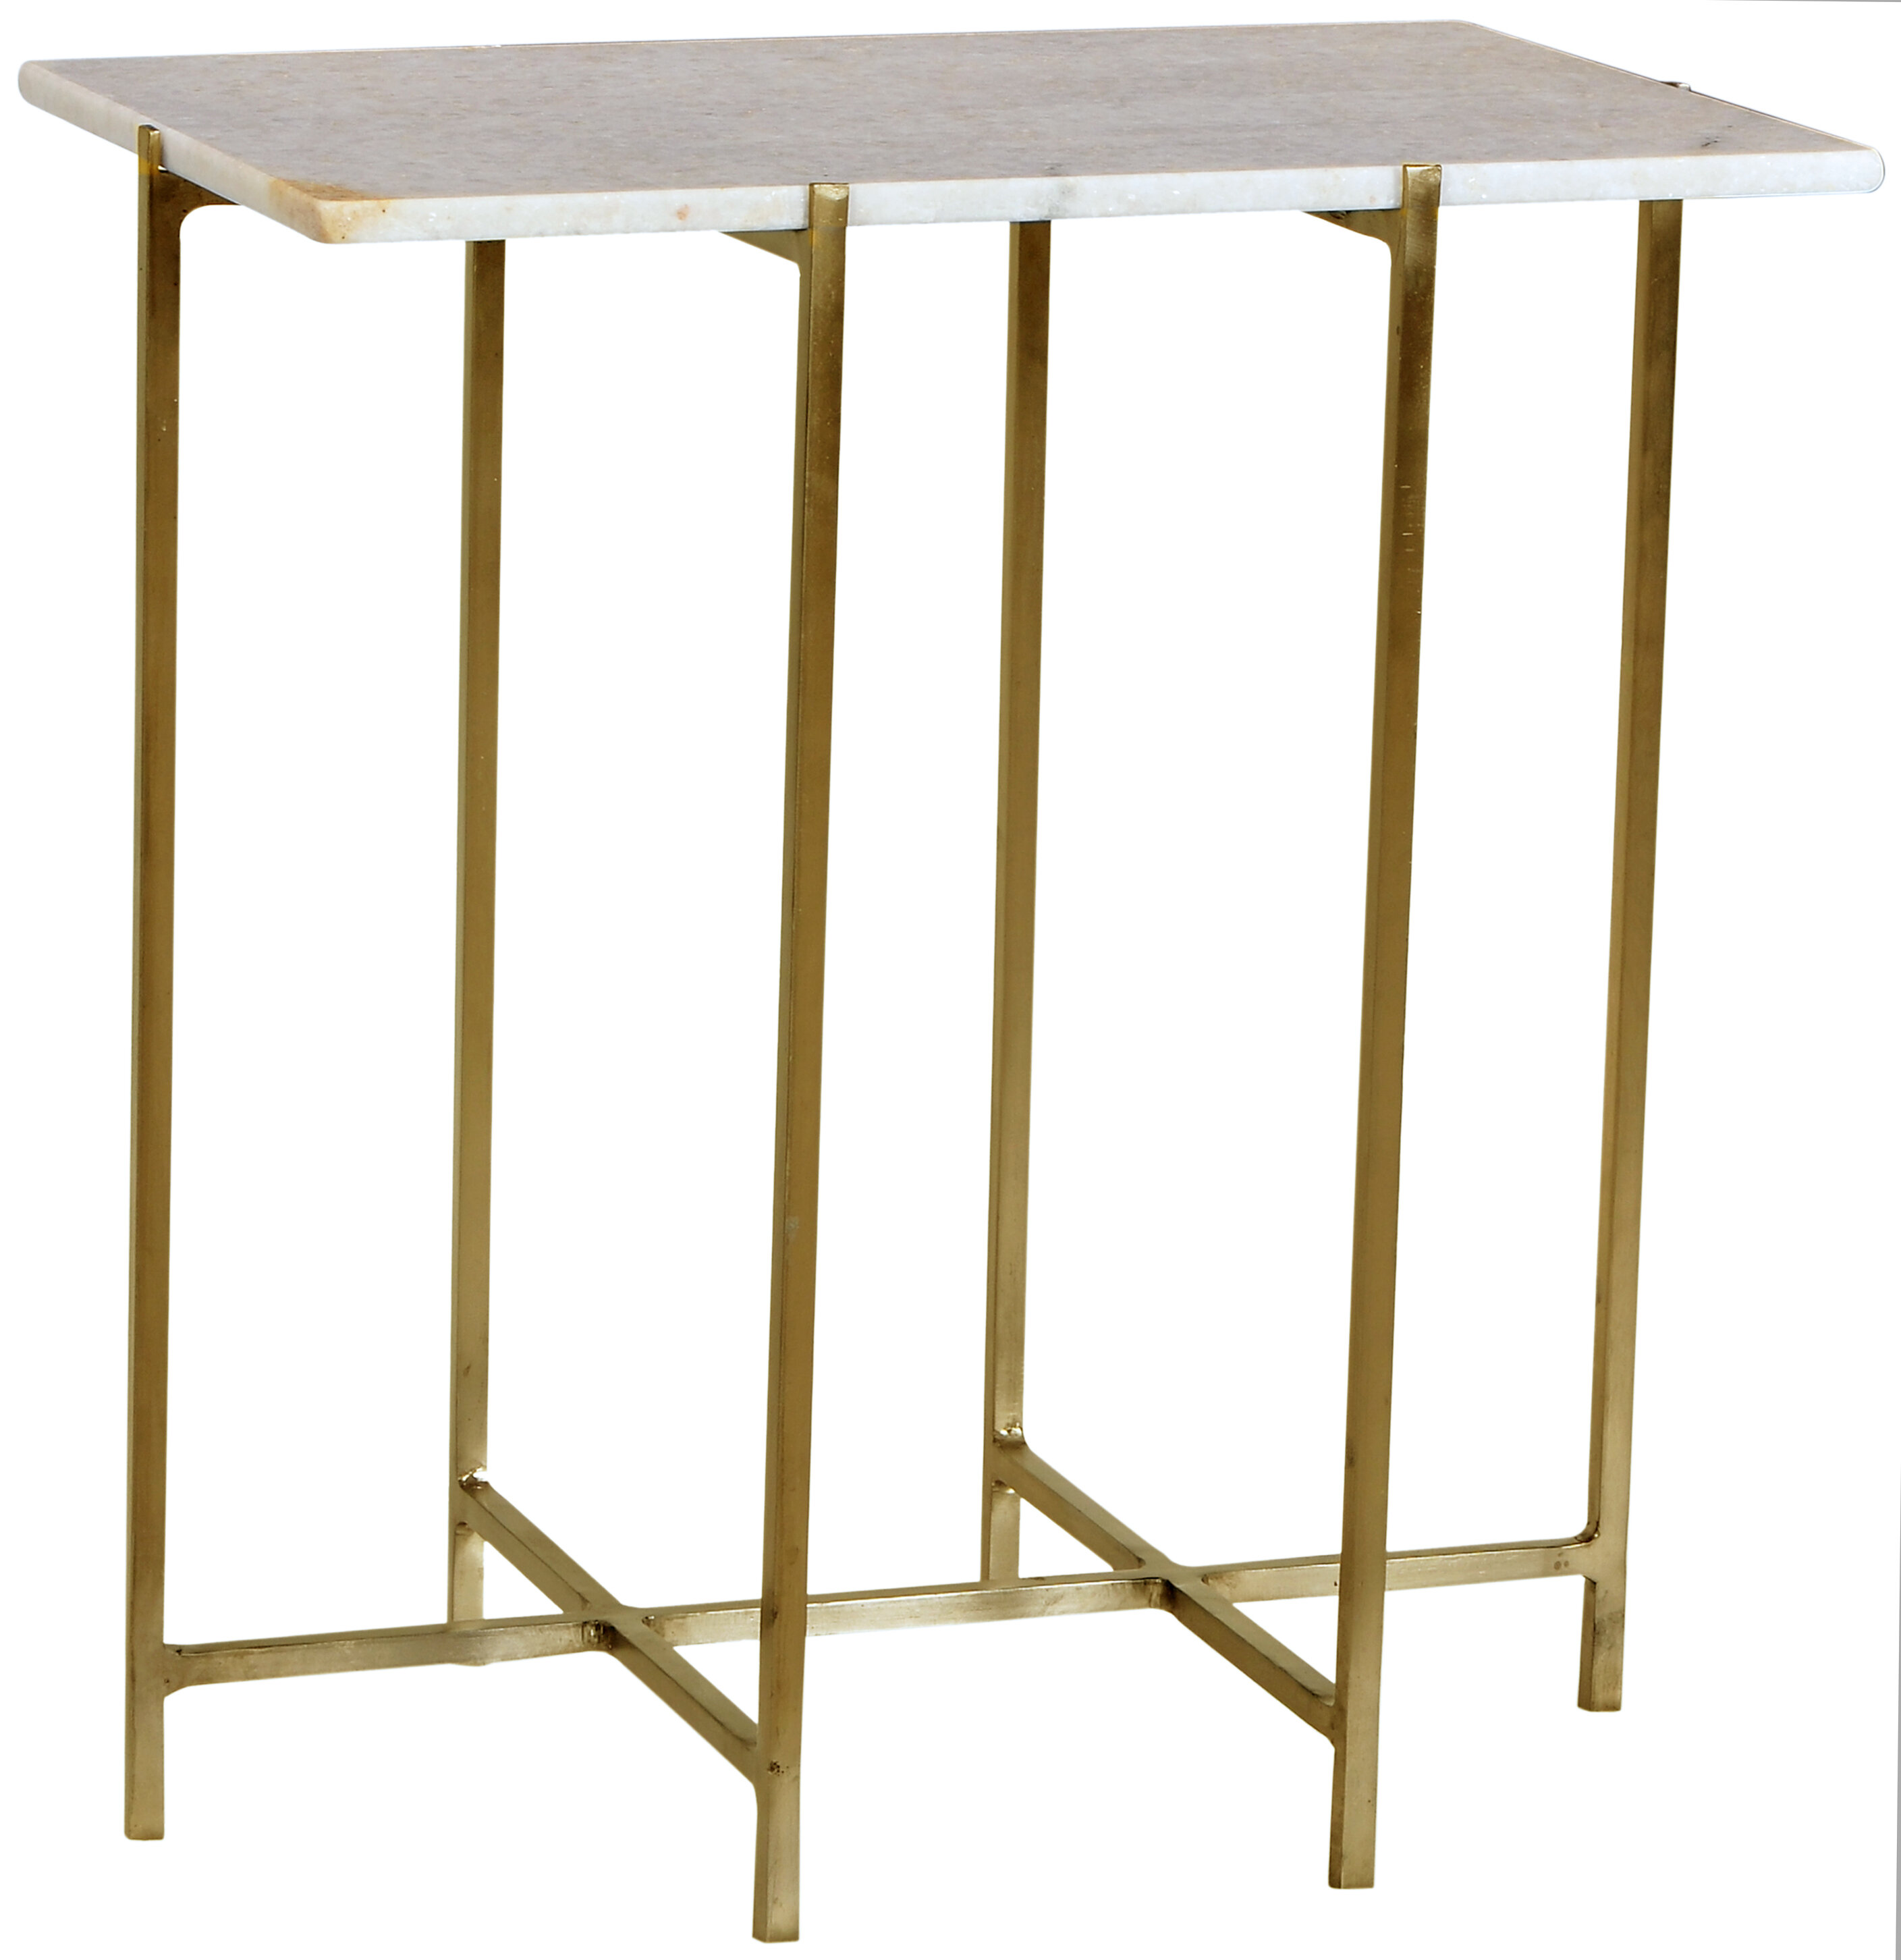 Tipton tate canton brass end table wayfair